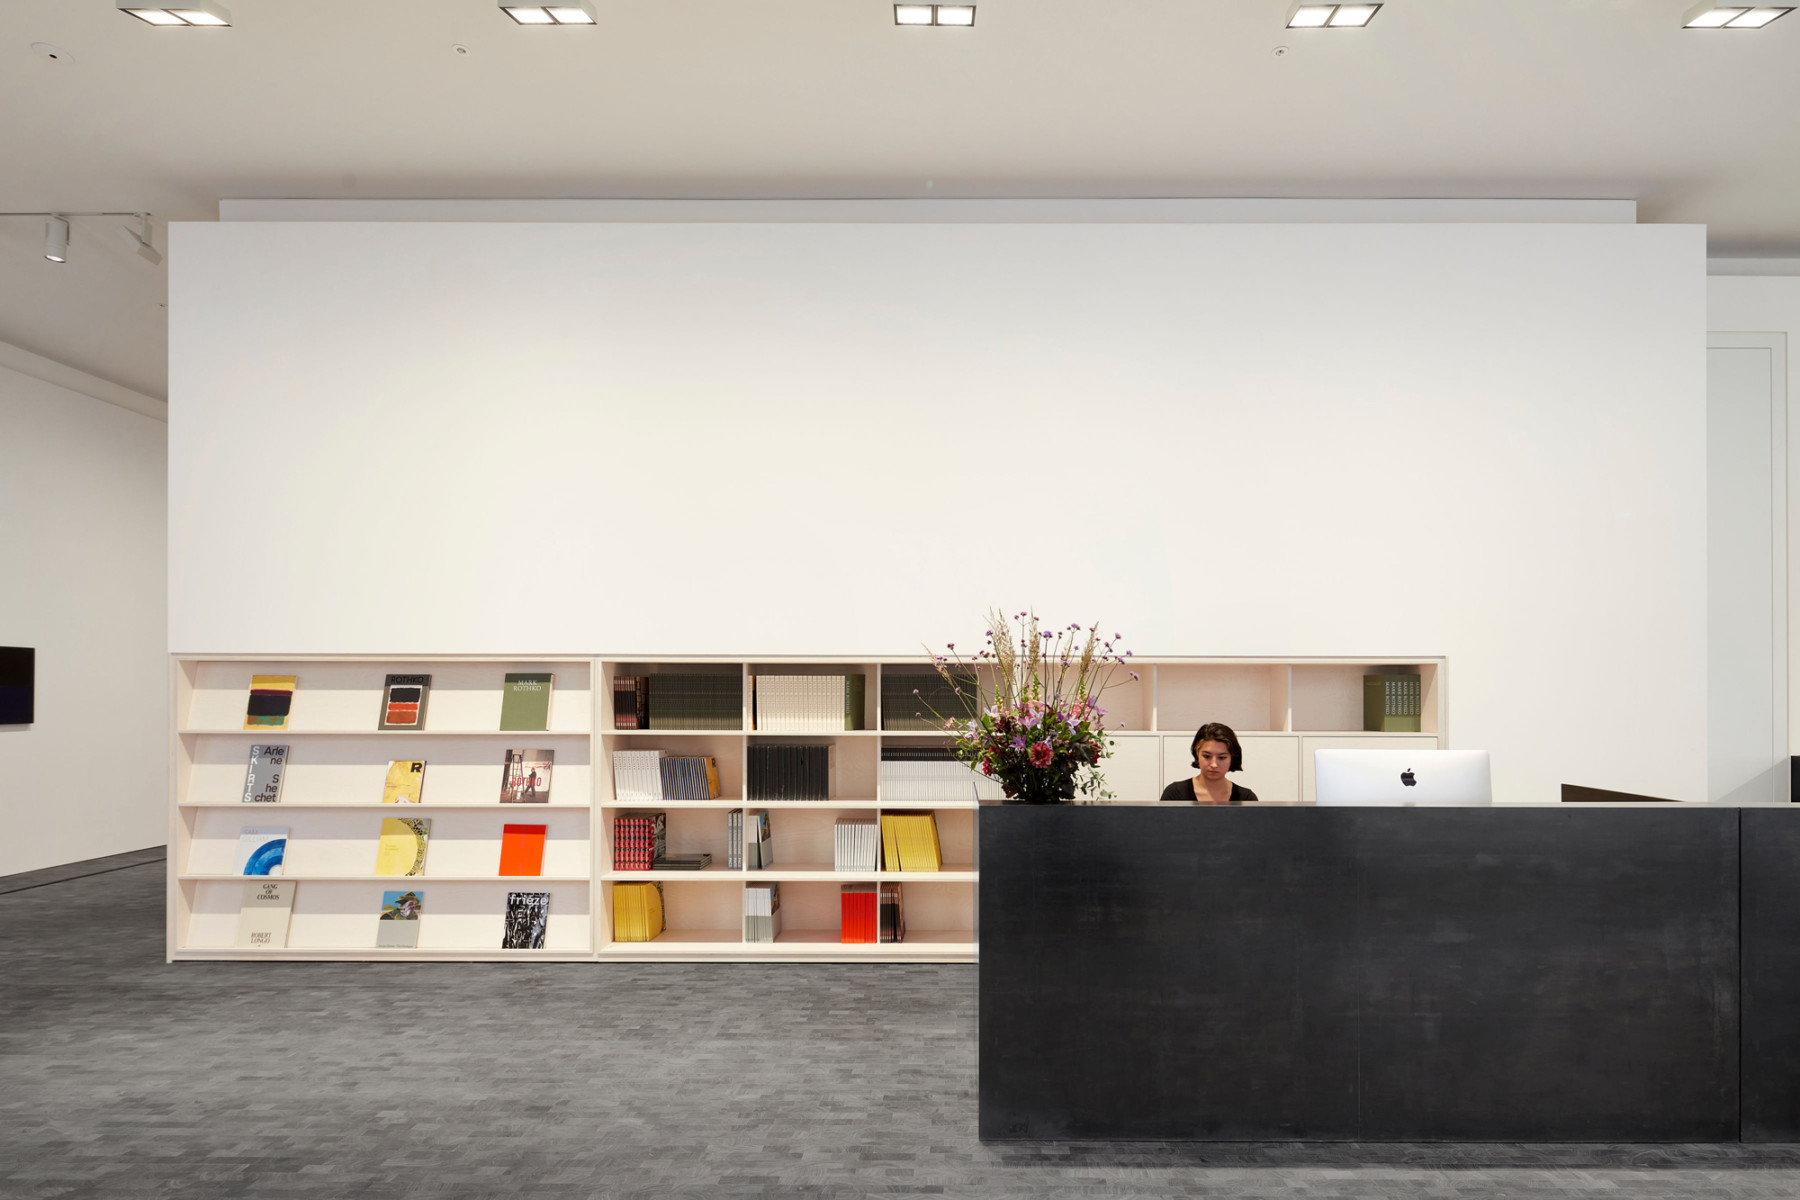 Pace-gallery-hanover-square-jamie-fobert-architects-reception